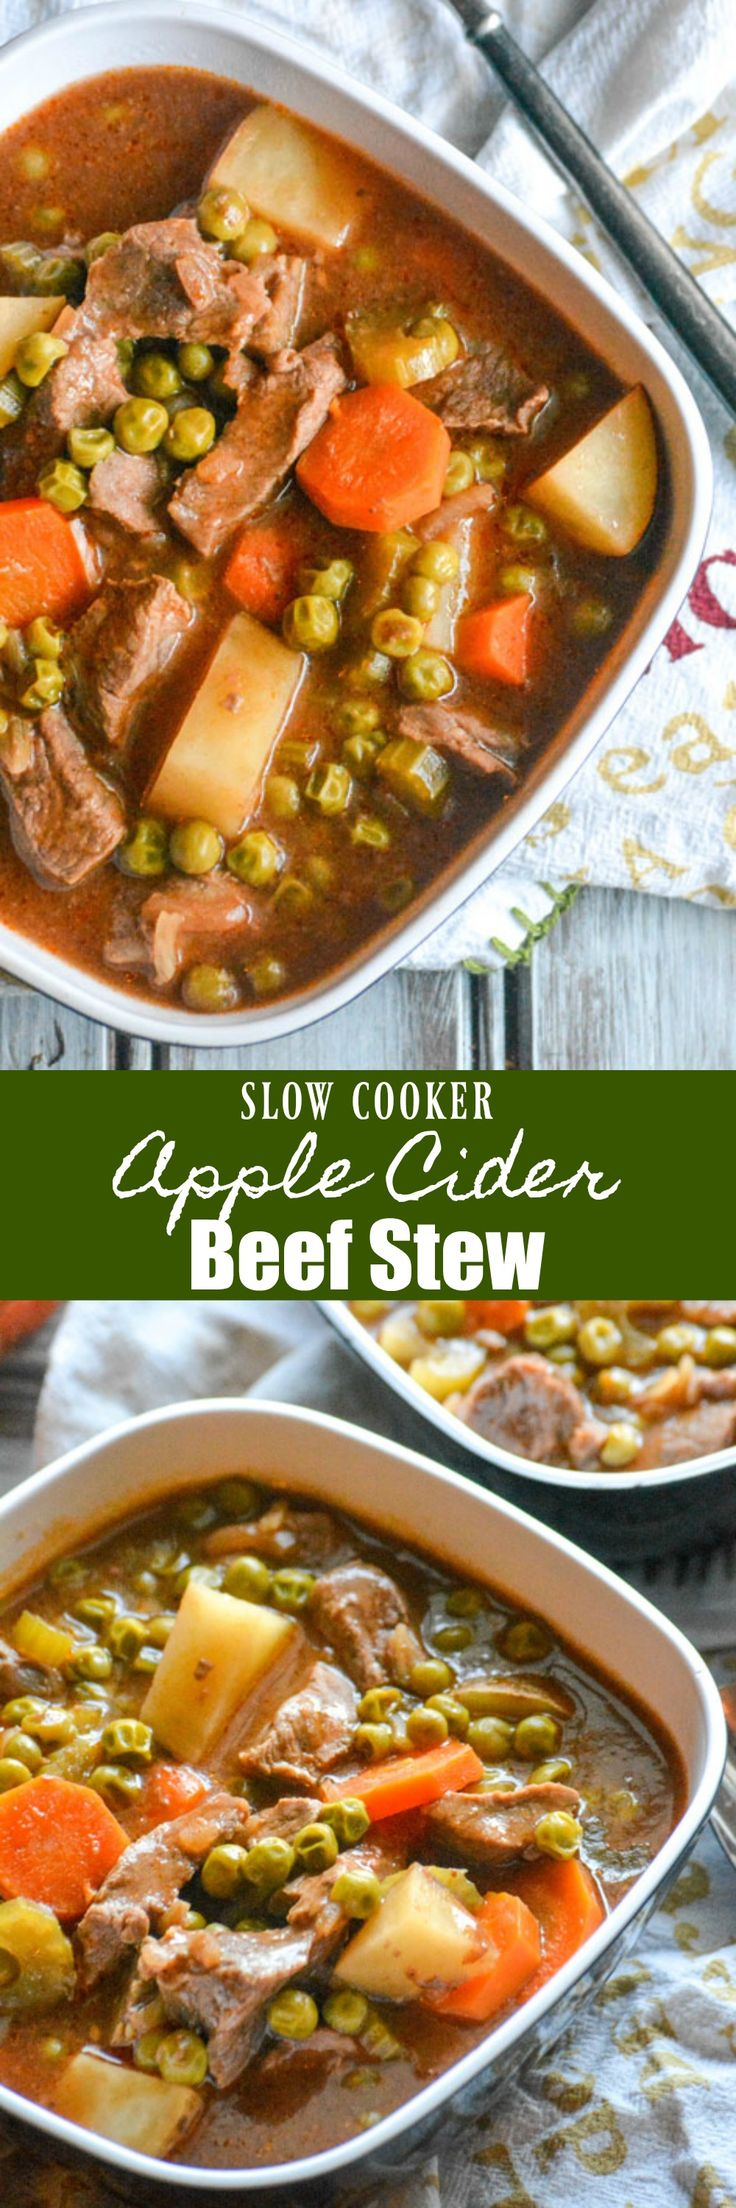 Cold weather got you feeling down? A heaping helping of this hearty slow cooked Apple Cider Beef Stew is just the kind of stick to your ribs lunch or dinner to lift your spirits. It even travels well, making it perfect for sharing and ideal for parties & potlucks. #soup #beefstew #slowcooker #crockpot #applecider